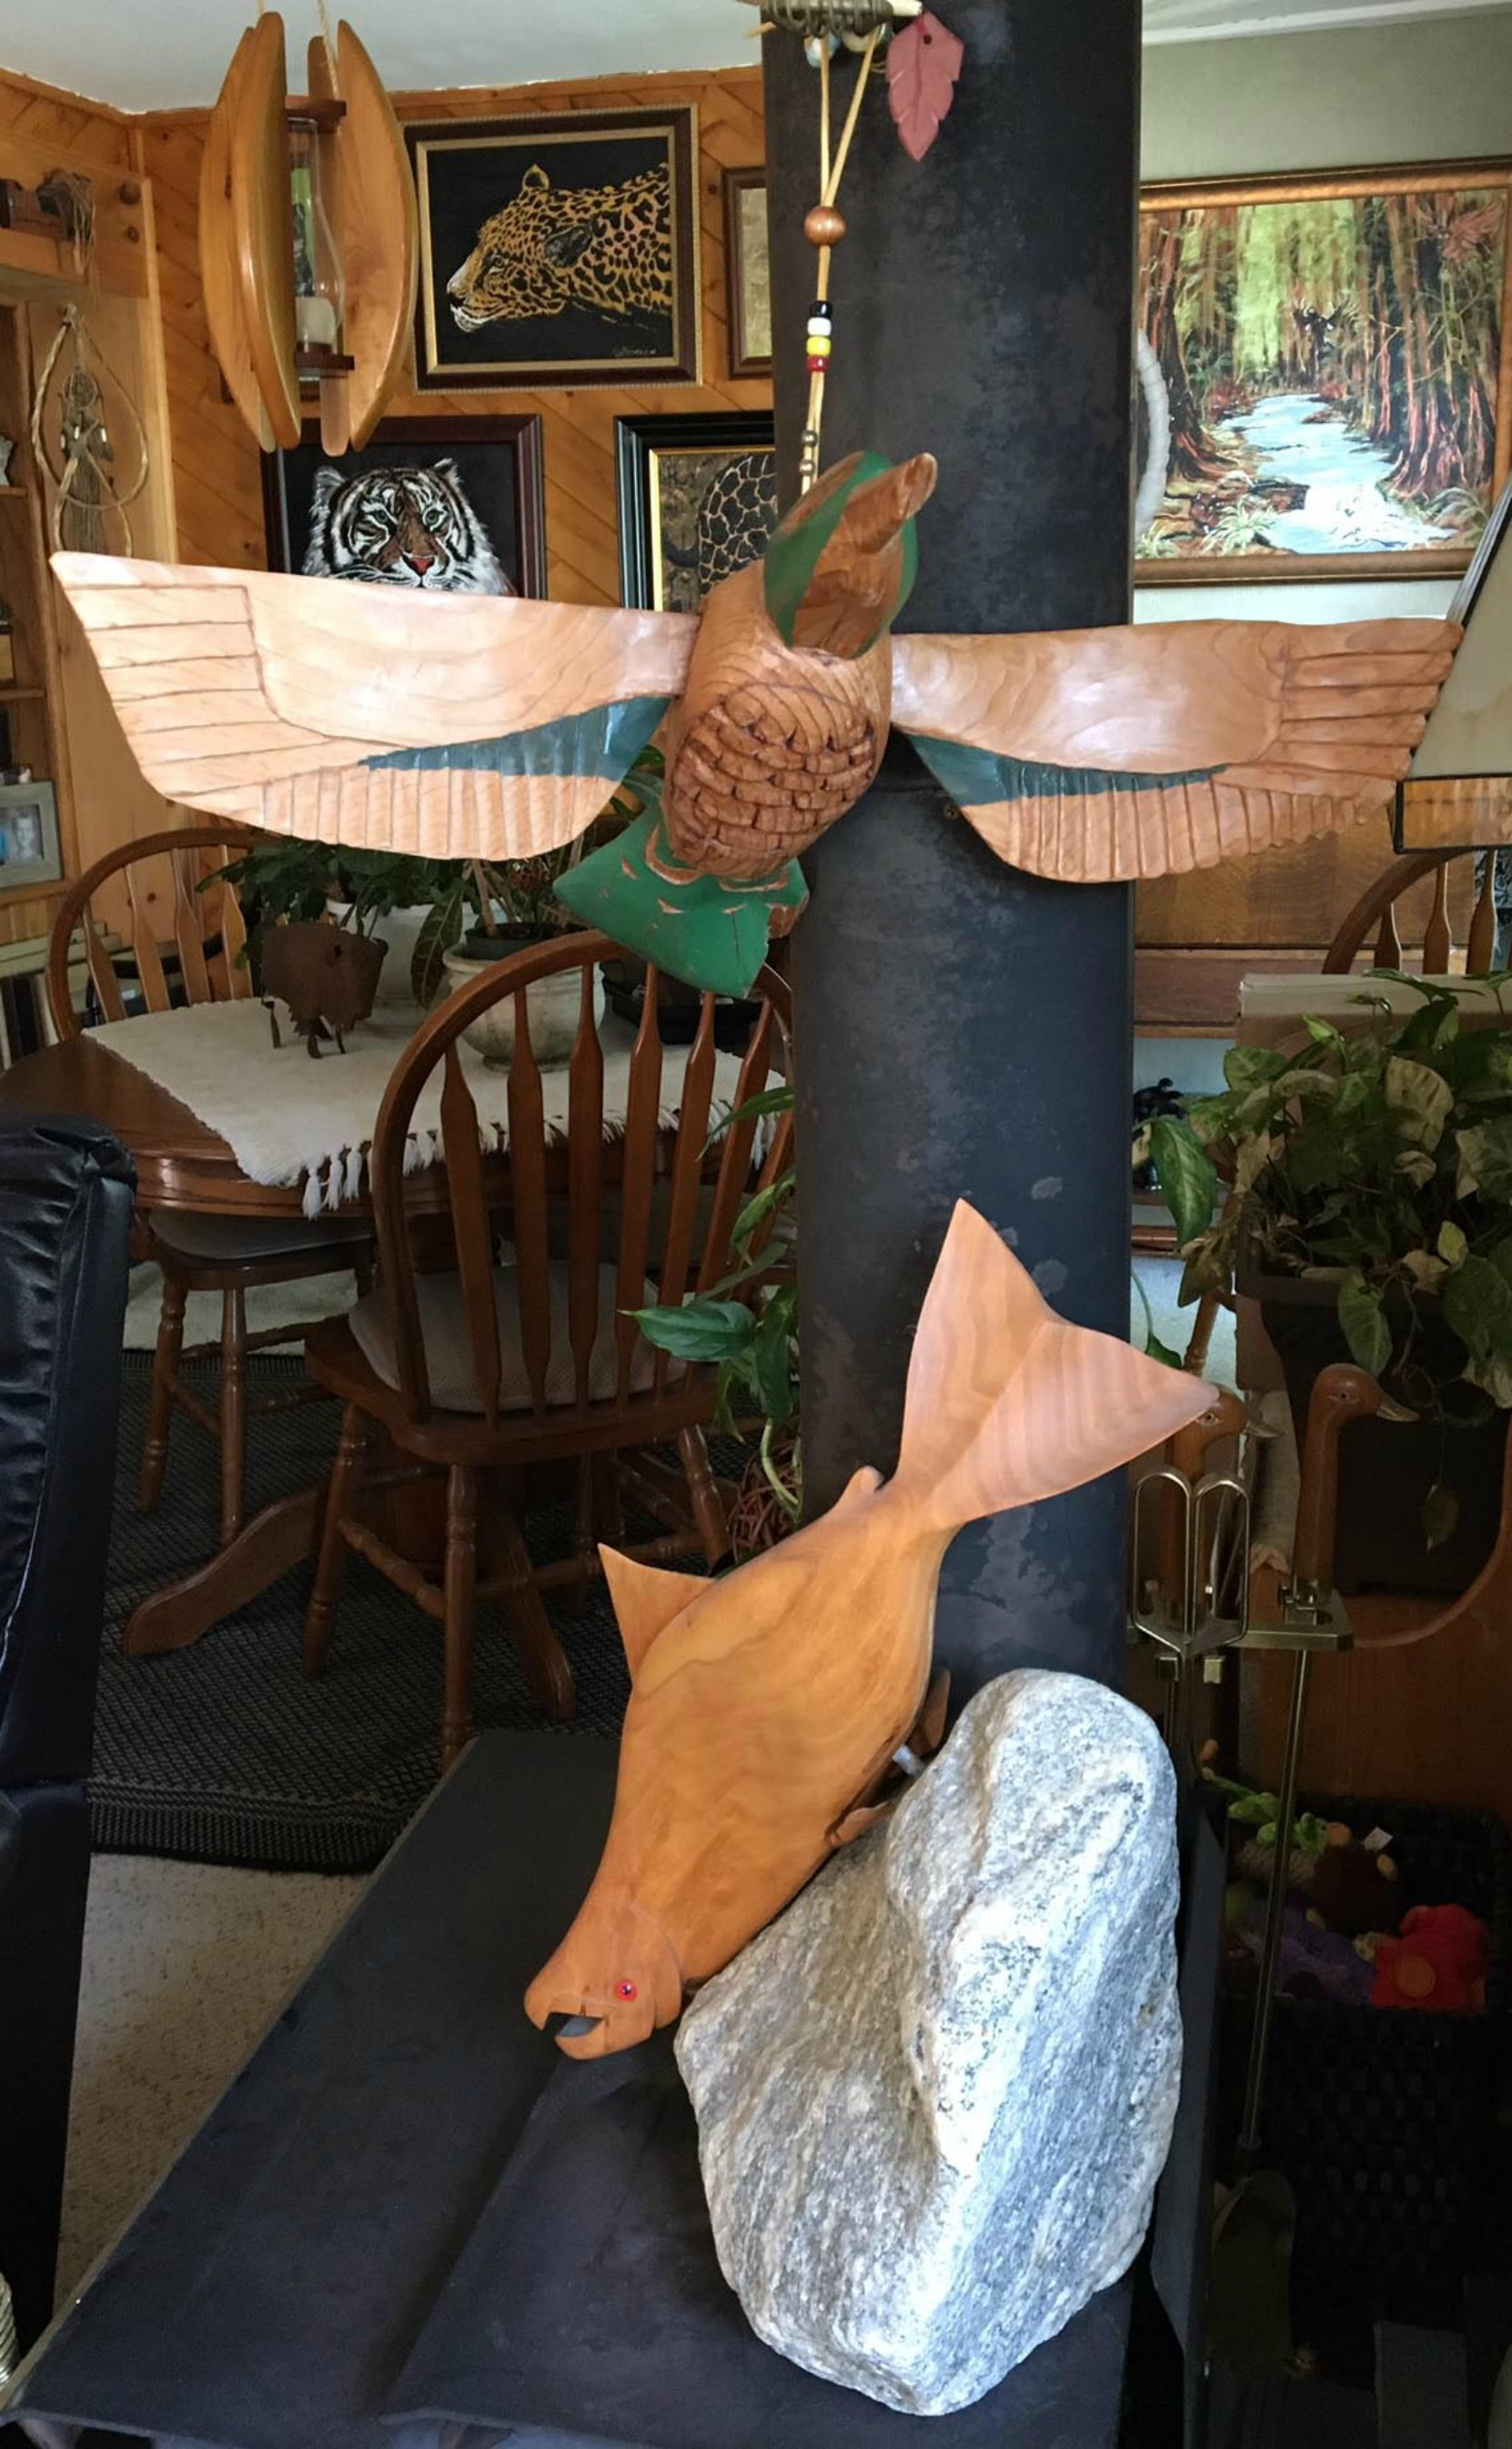 Carol Sanders provided us with this photo of a Simon Charlie Hummingbird carving she purchased from Simon Charlie in the 1990's. The Salmon carving is by John Sanders. (photo: Carol Sanders, Blue Eagle Gallery, used with permission)